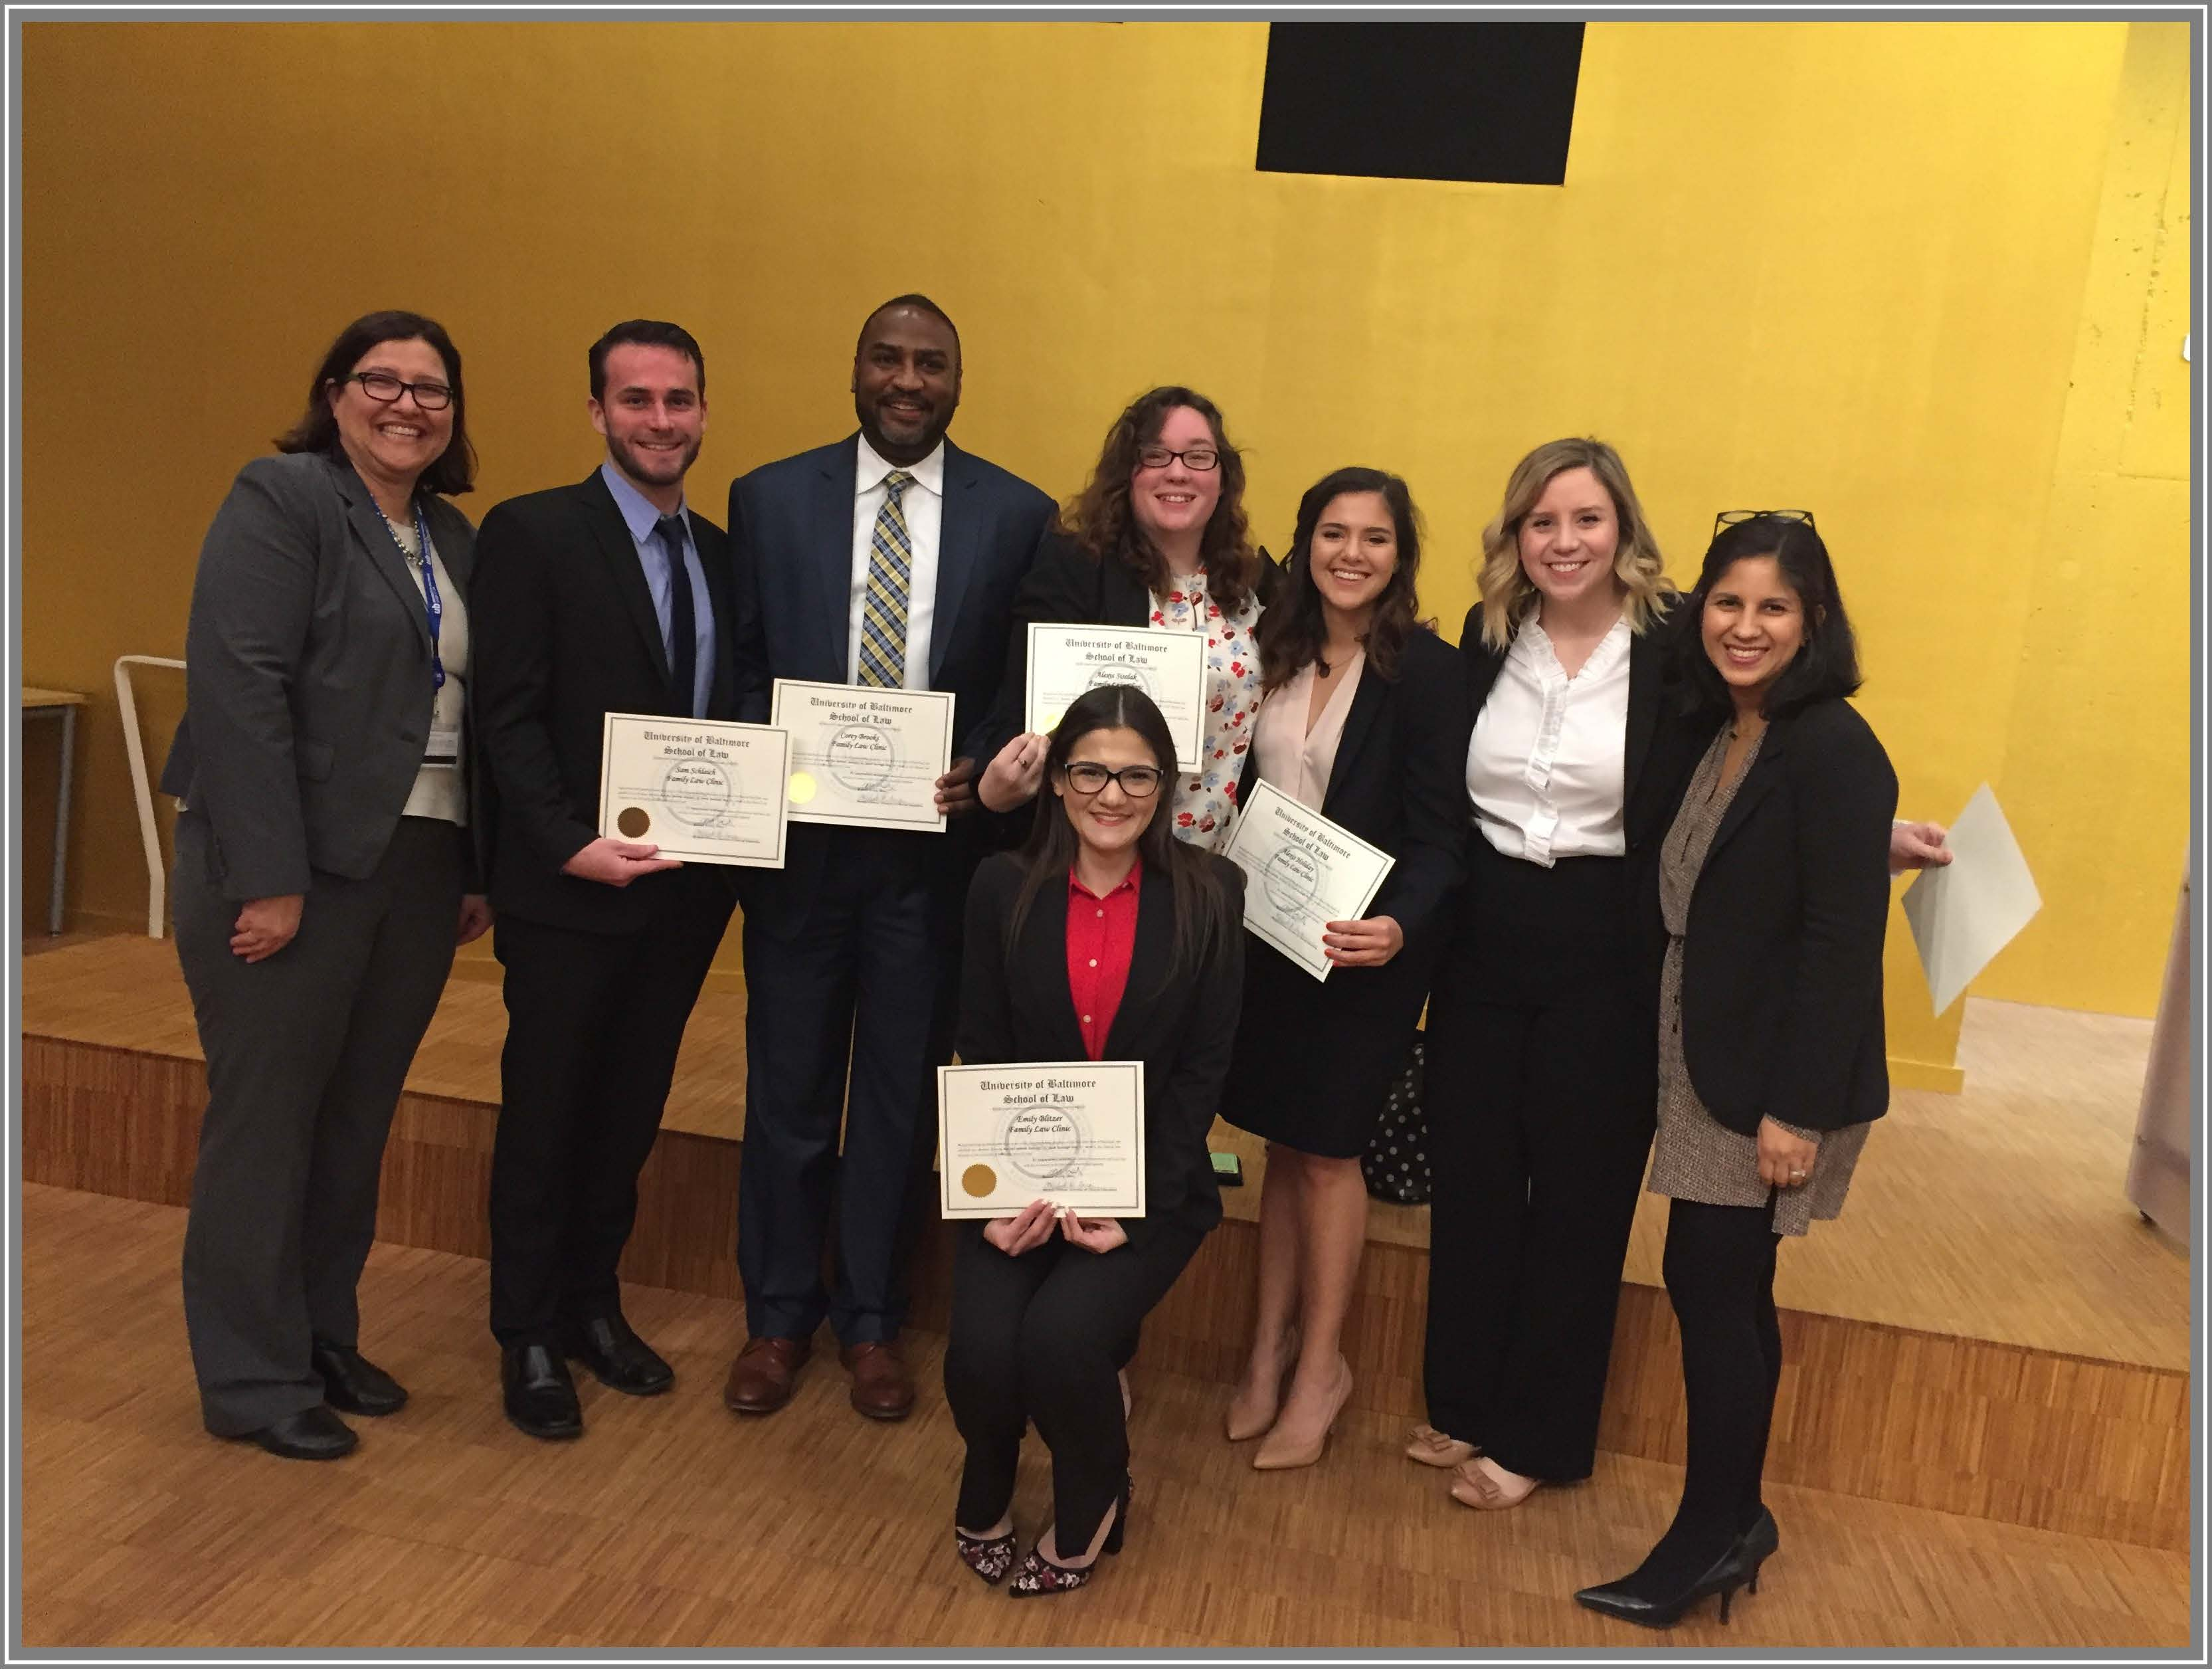 Family Law Clinic Student Attorneys